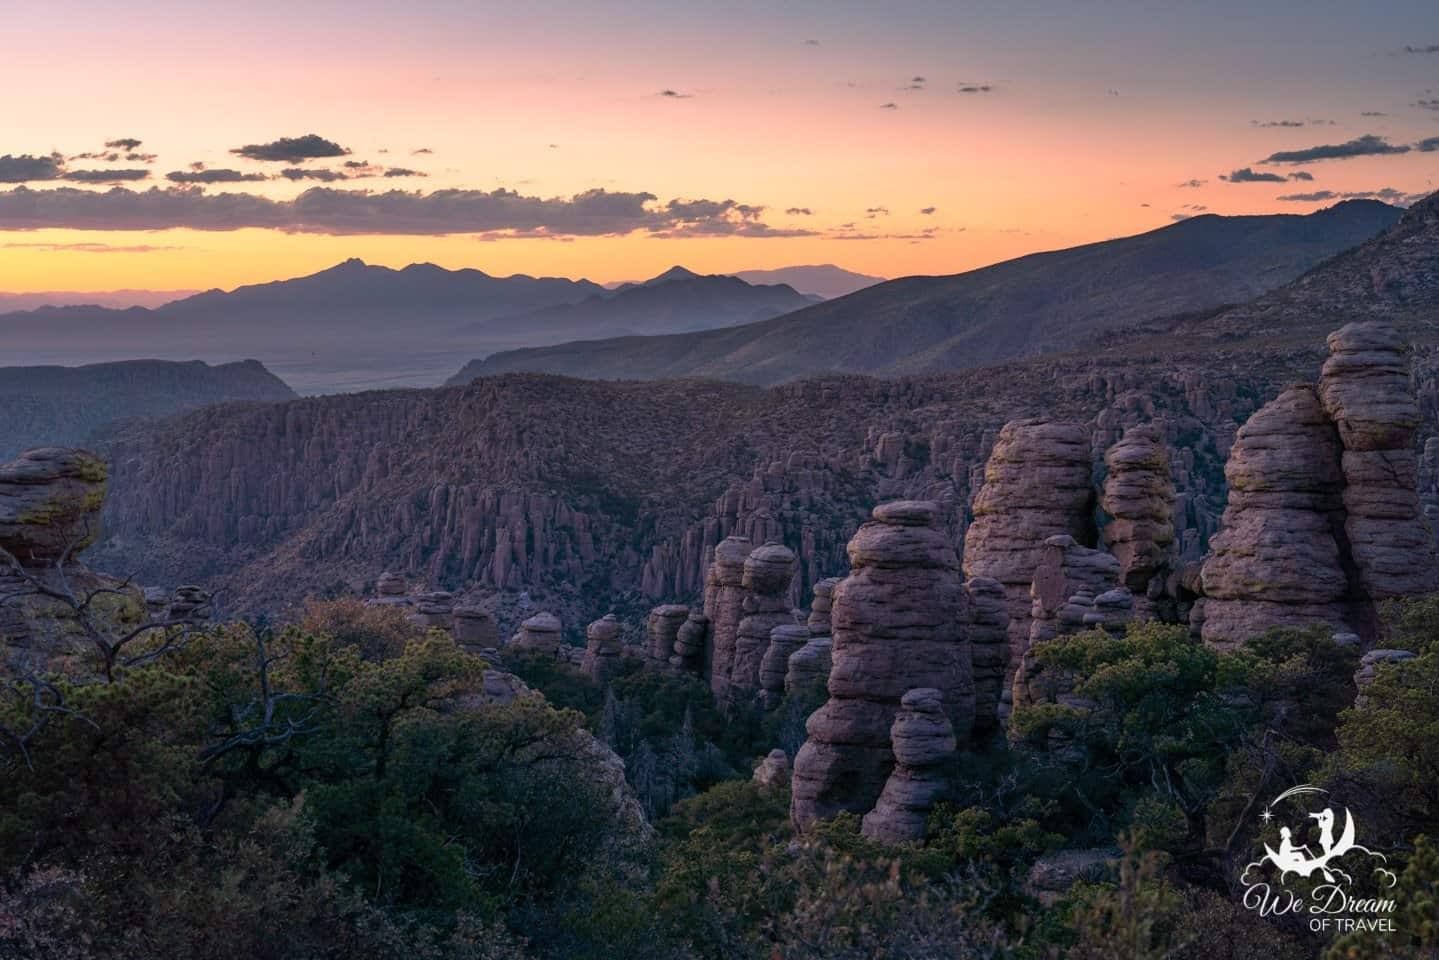 Sunset lights up the sky with oranges and pinks above the rocks at Chiracahua